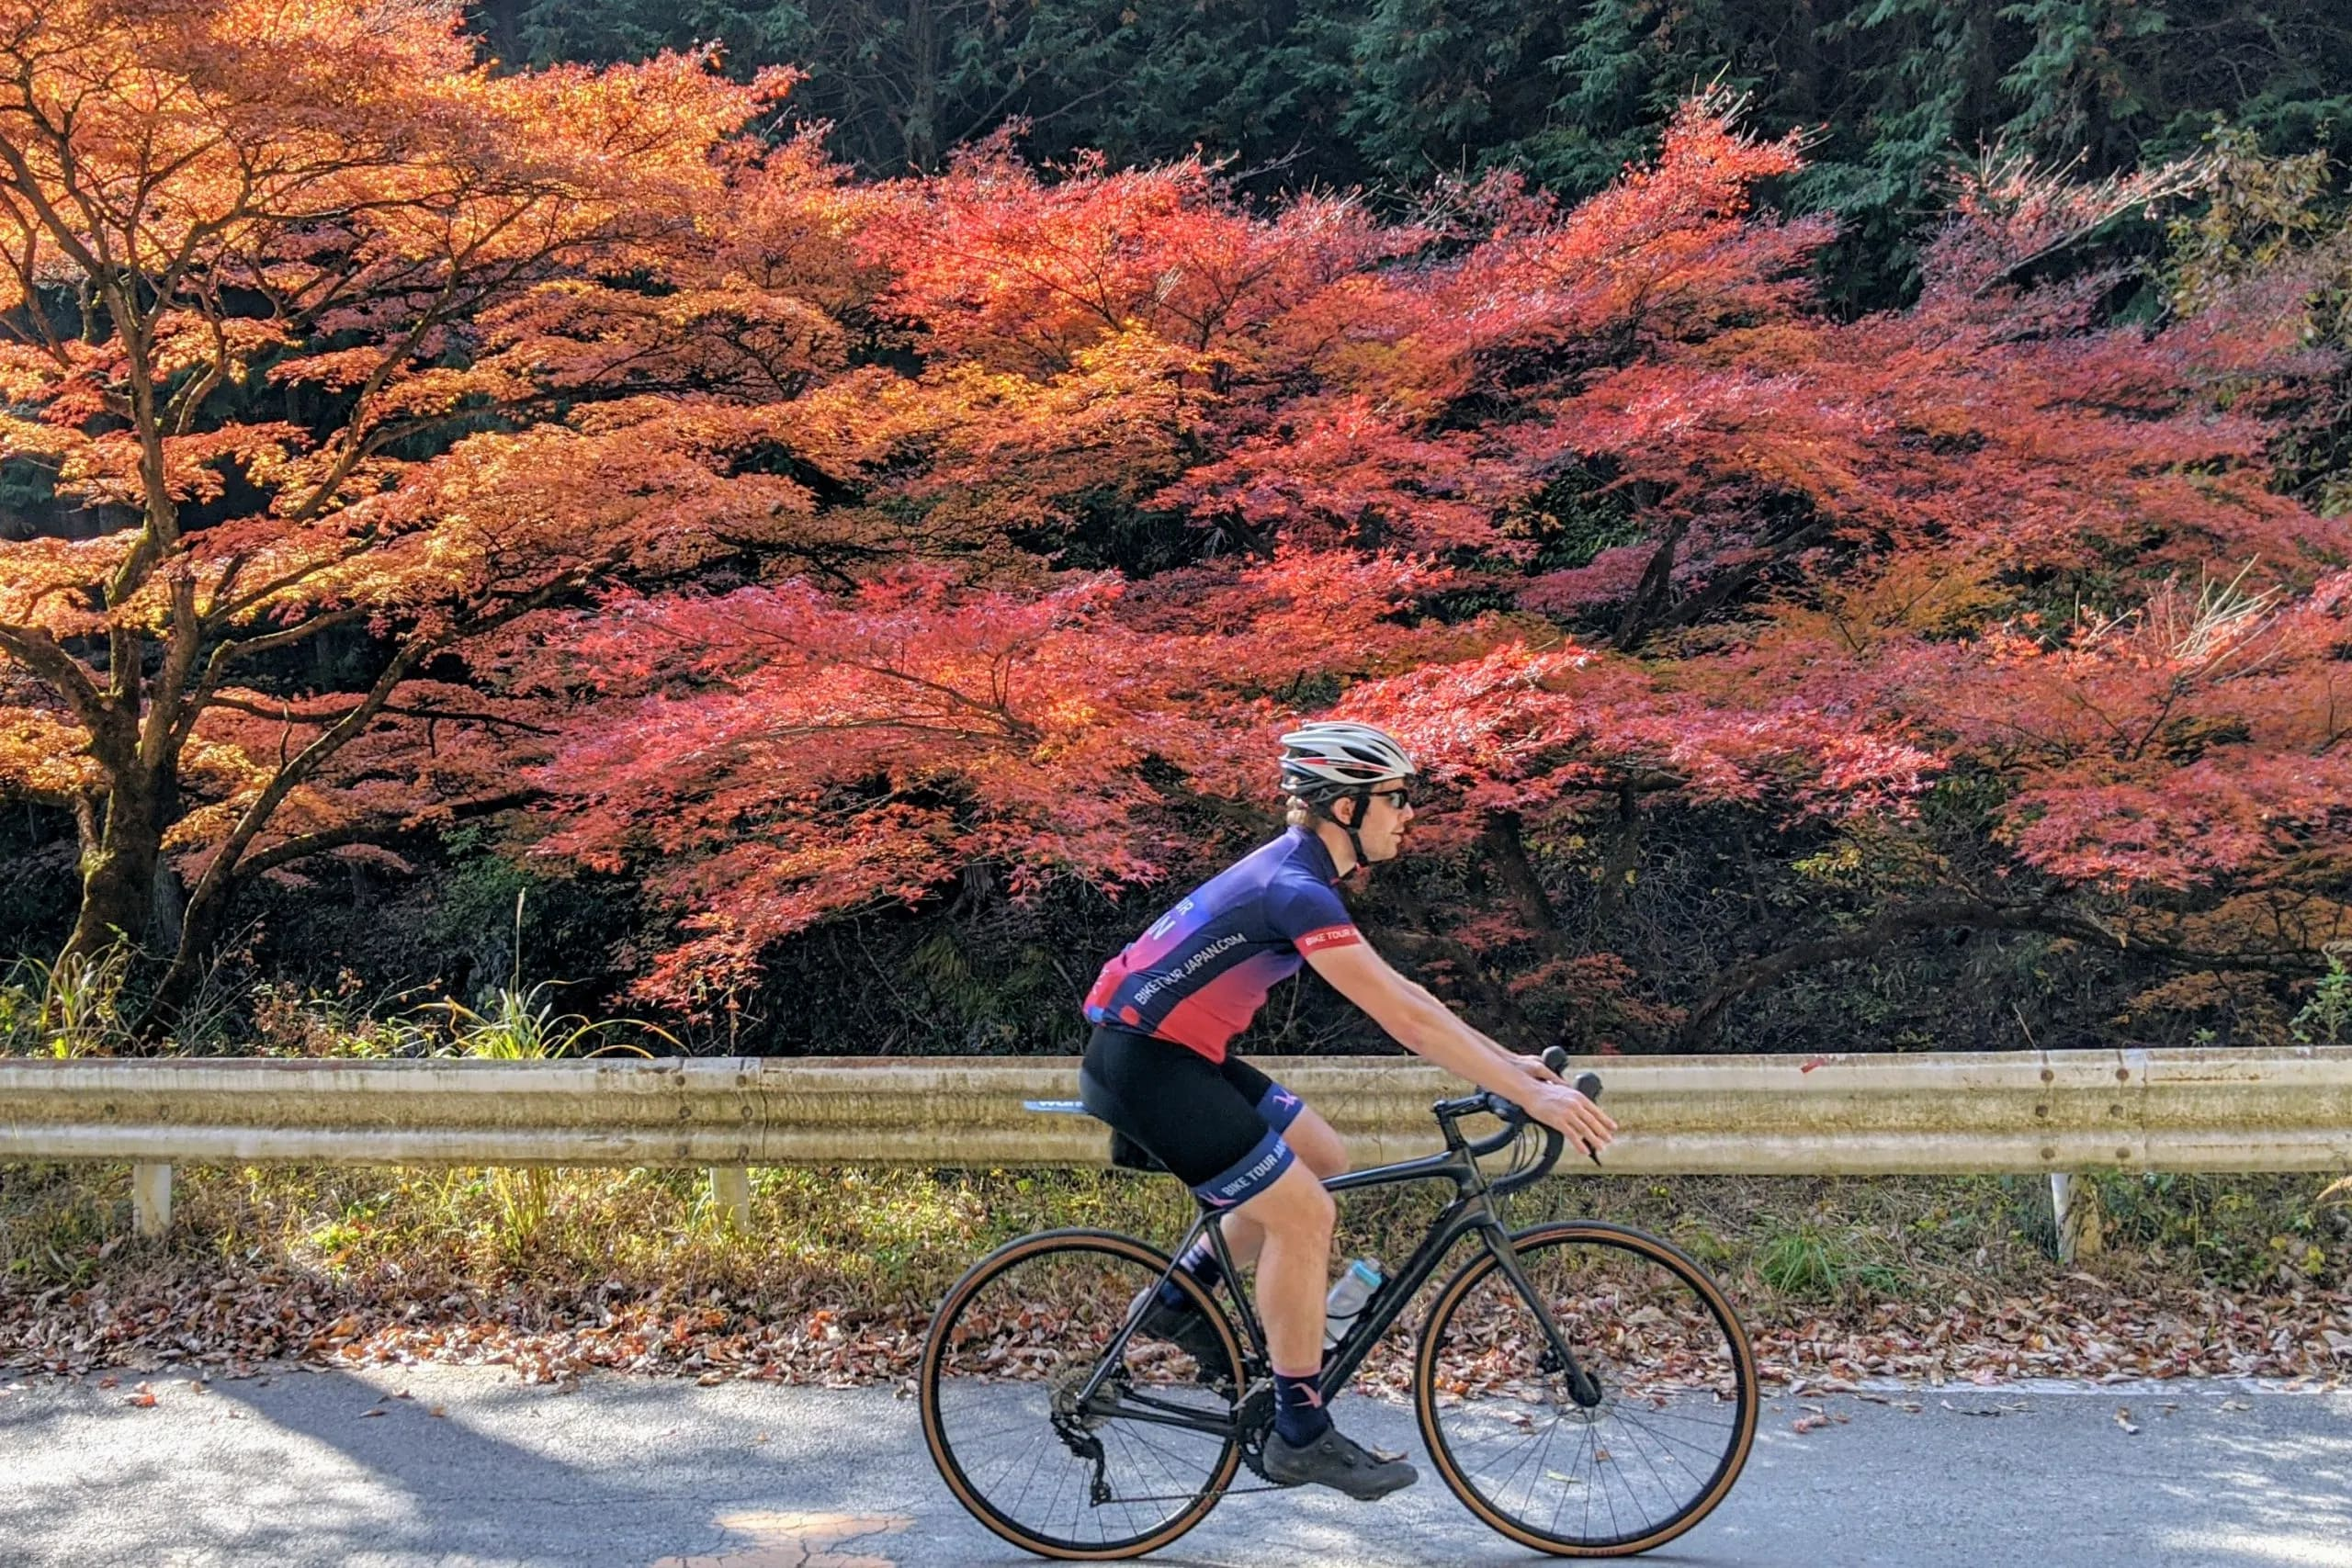 I could spend all day riding in the canopies of Japanese Maples & Ginko Trees of the Japanese countryside!